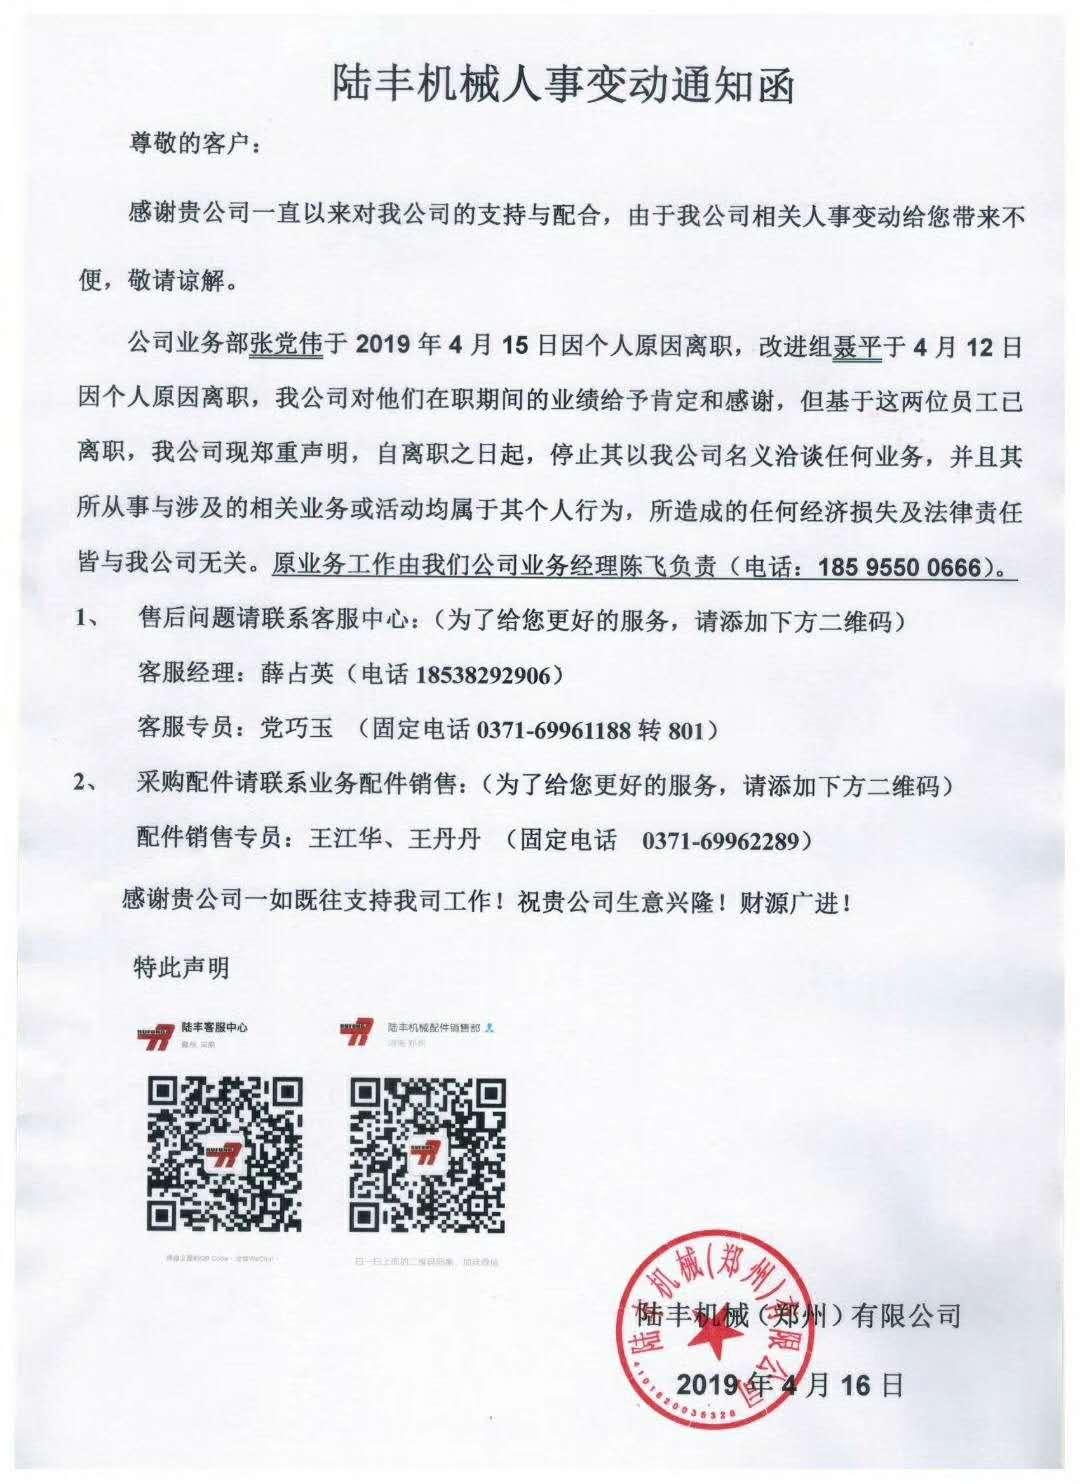 Lufeng Machinery Personnel Change Notification Letter